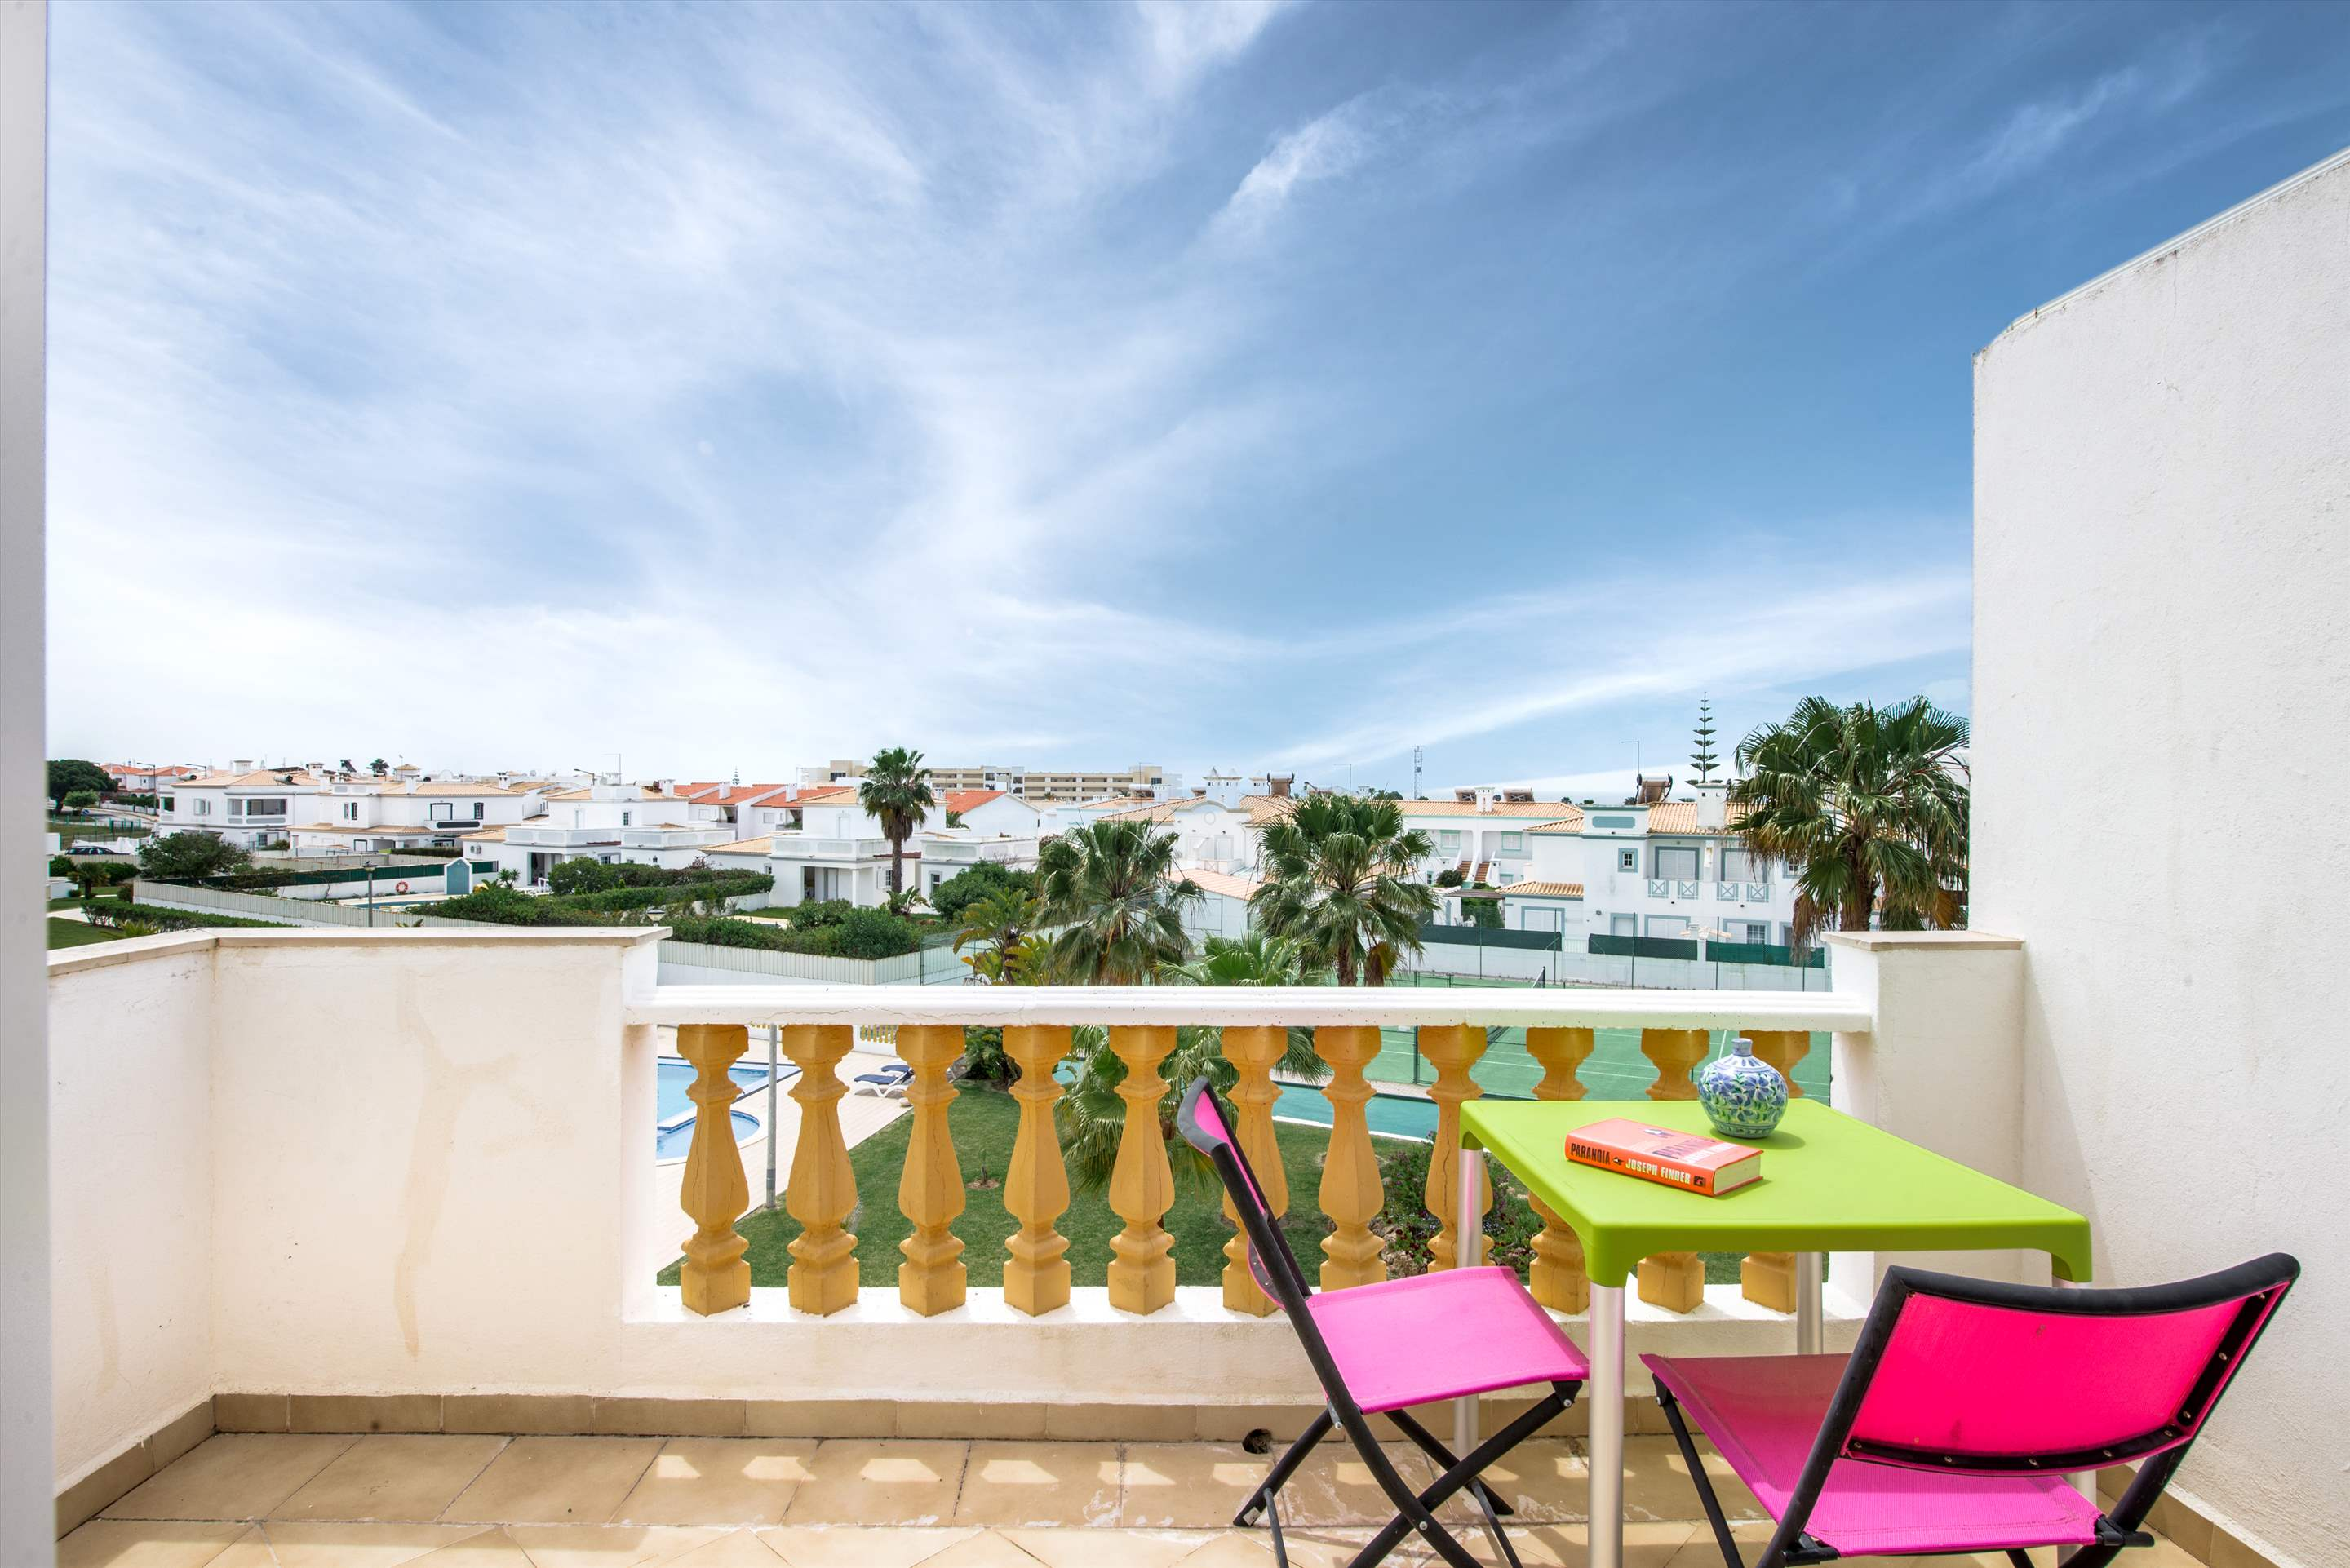 Apt O Monte, For Up to 4 Persons, 2 bedroom apartment in Gale, Vale da Parra and Guia, Algarve Photo #22